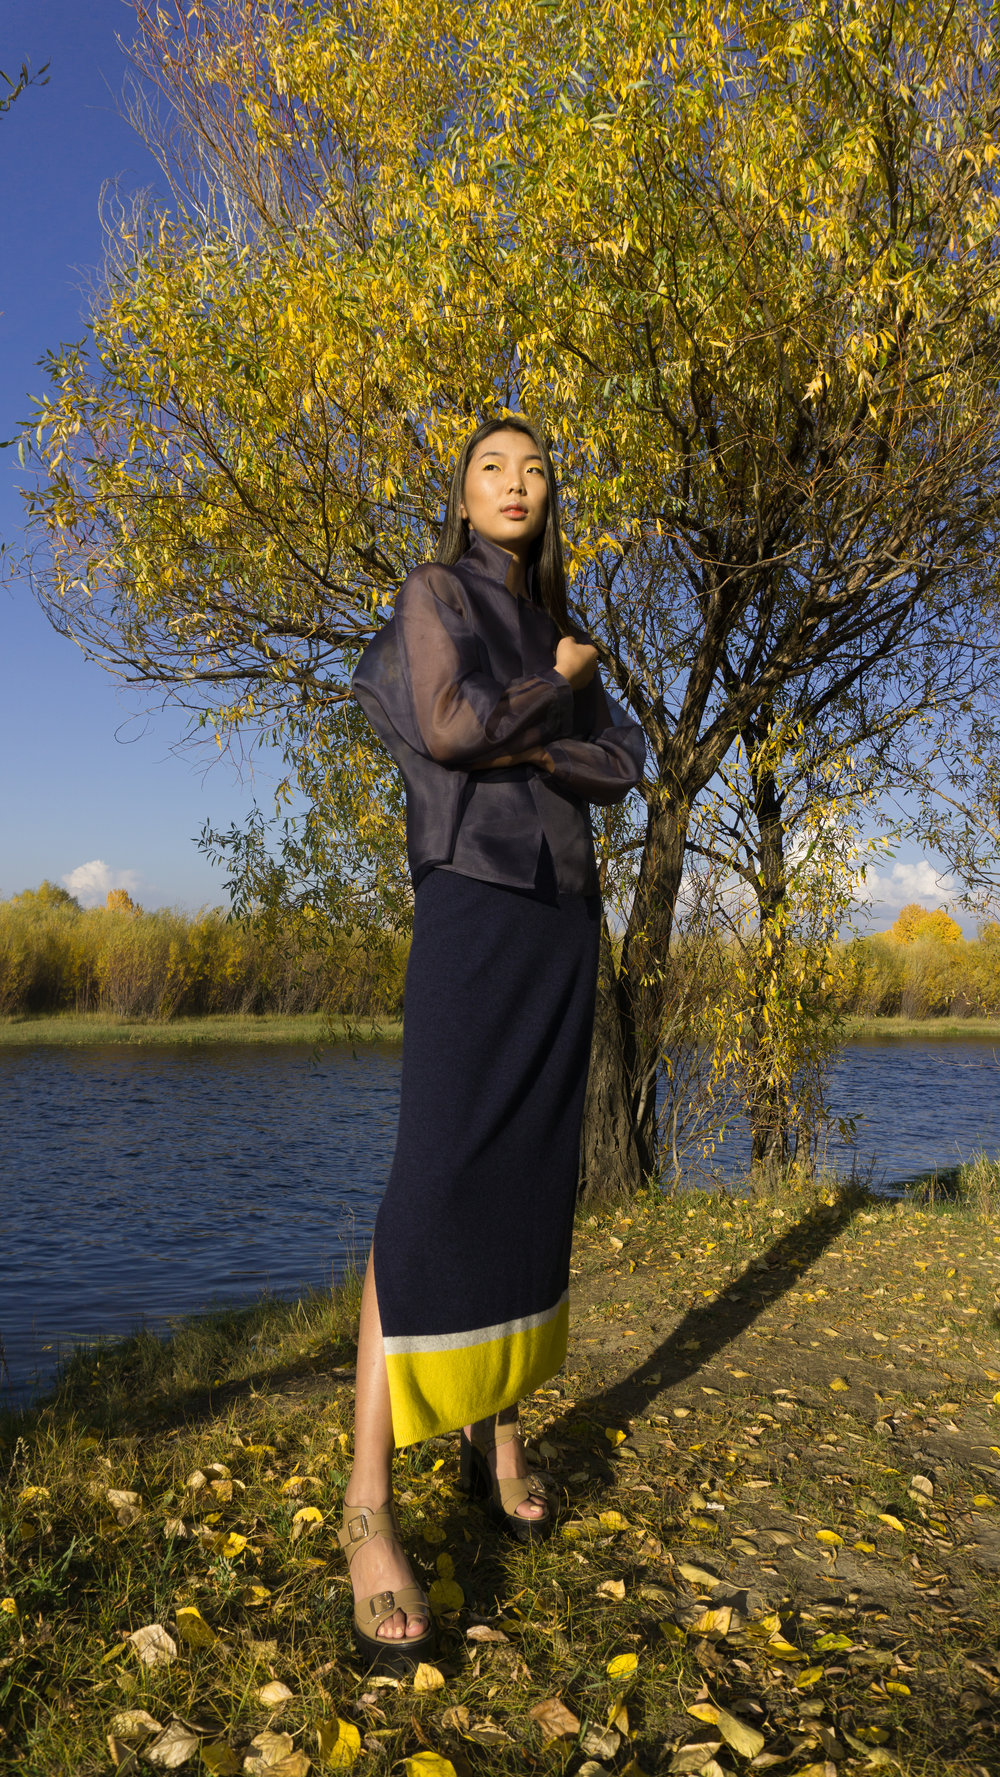 Mandkhai ss18 knit dress shot in Mongolia